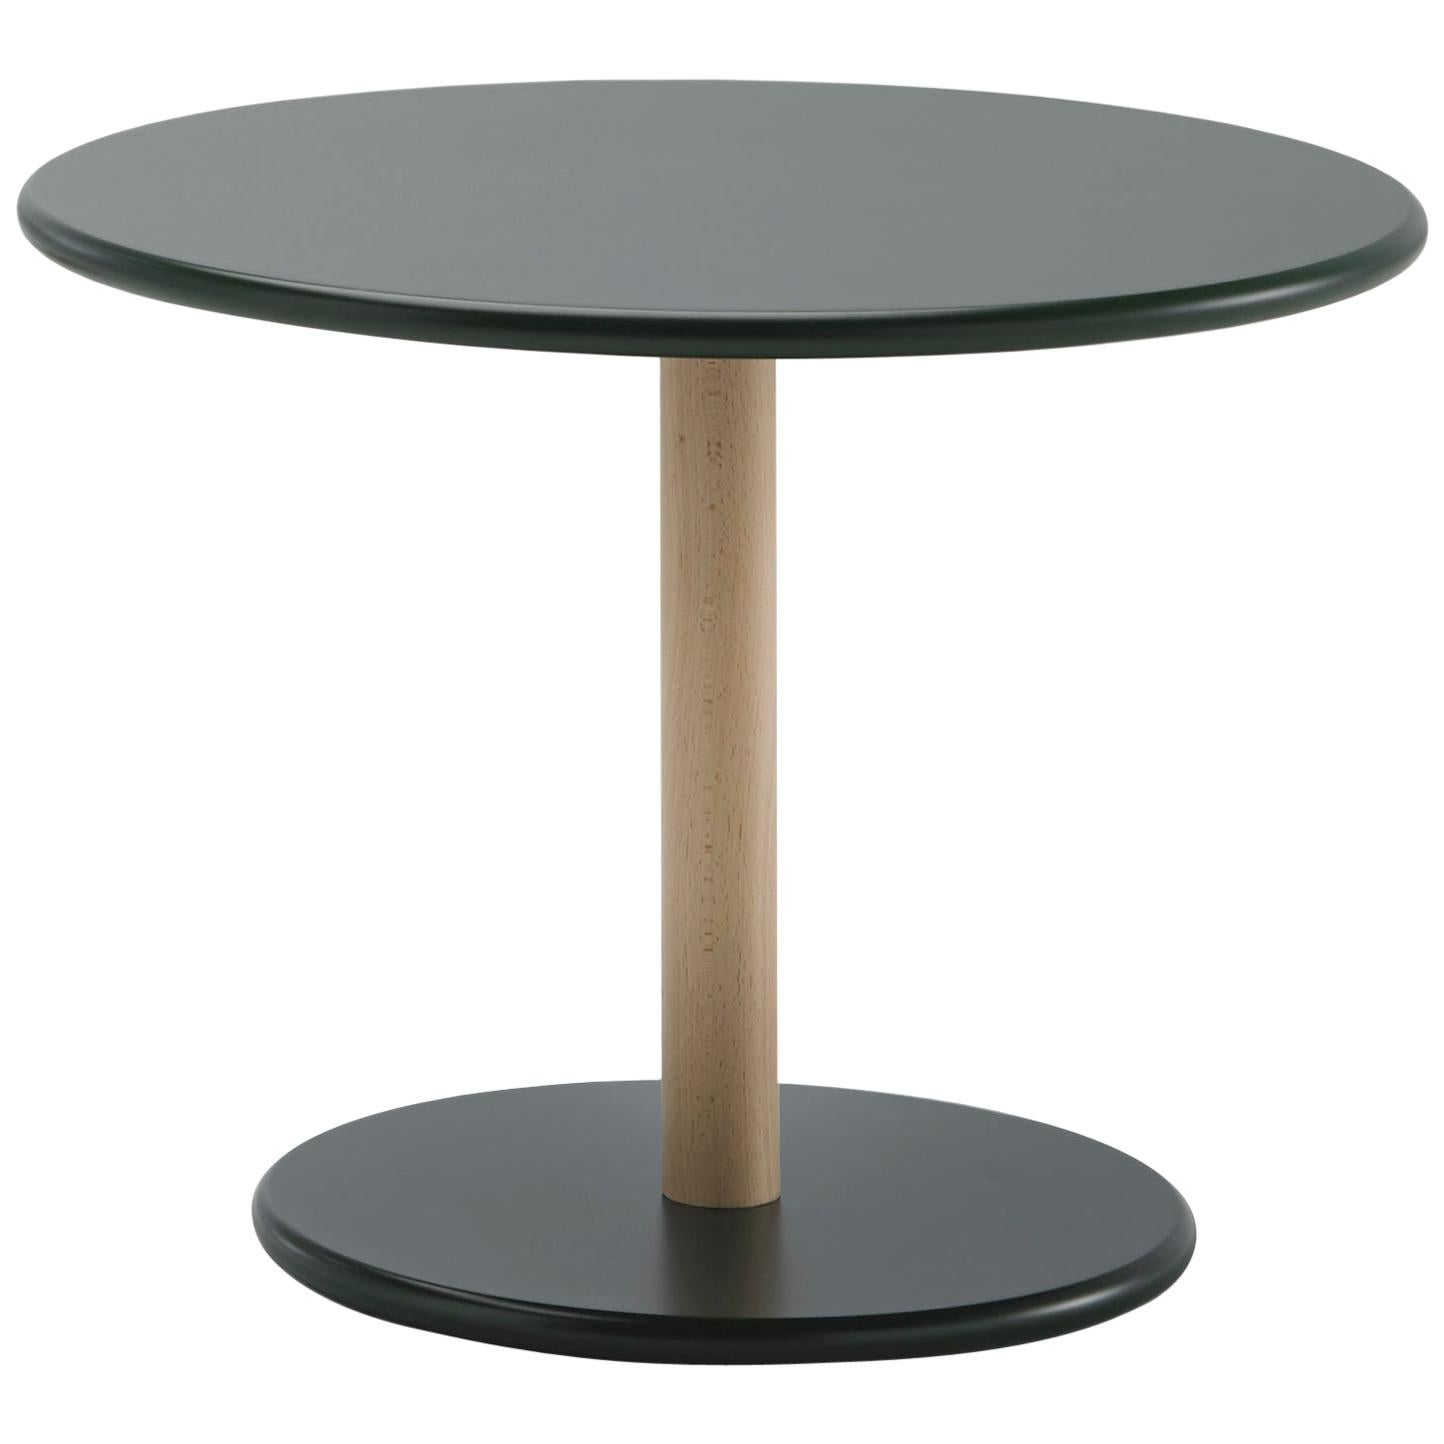 Viccarbe  Common Coffee Table, Black Finish H 17.7 inches by Naoto Fukasawa